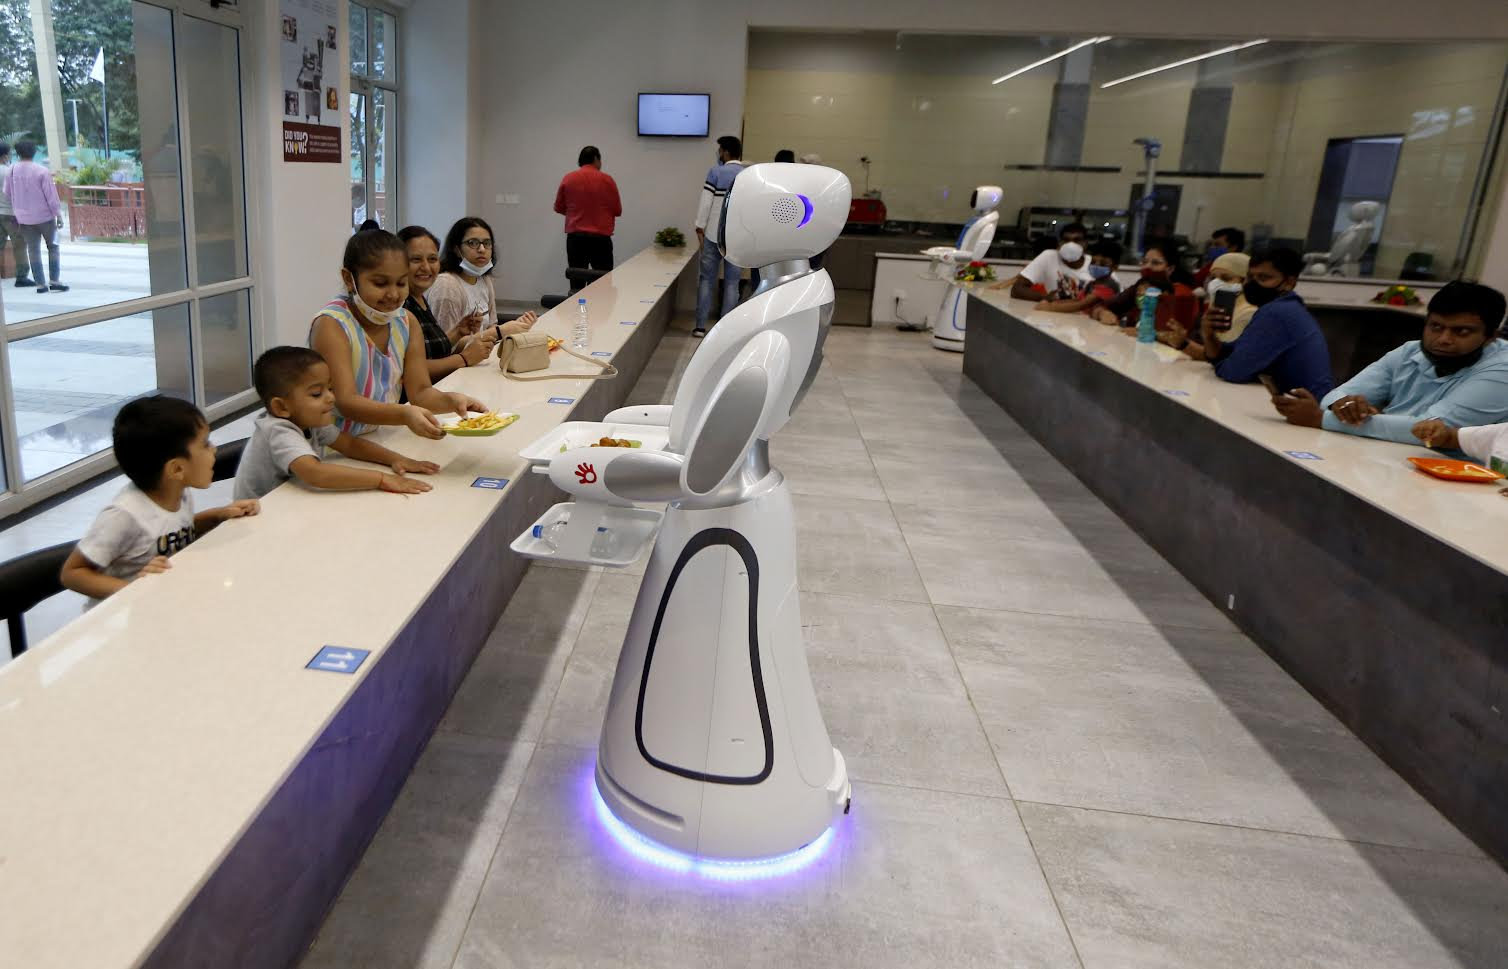 Robot Cafe in Science City amazes visitors